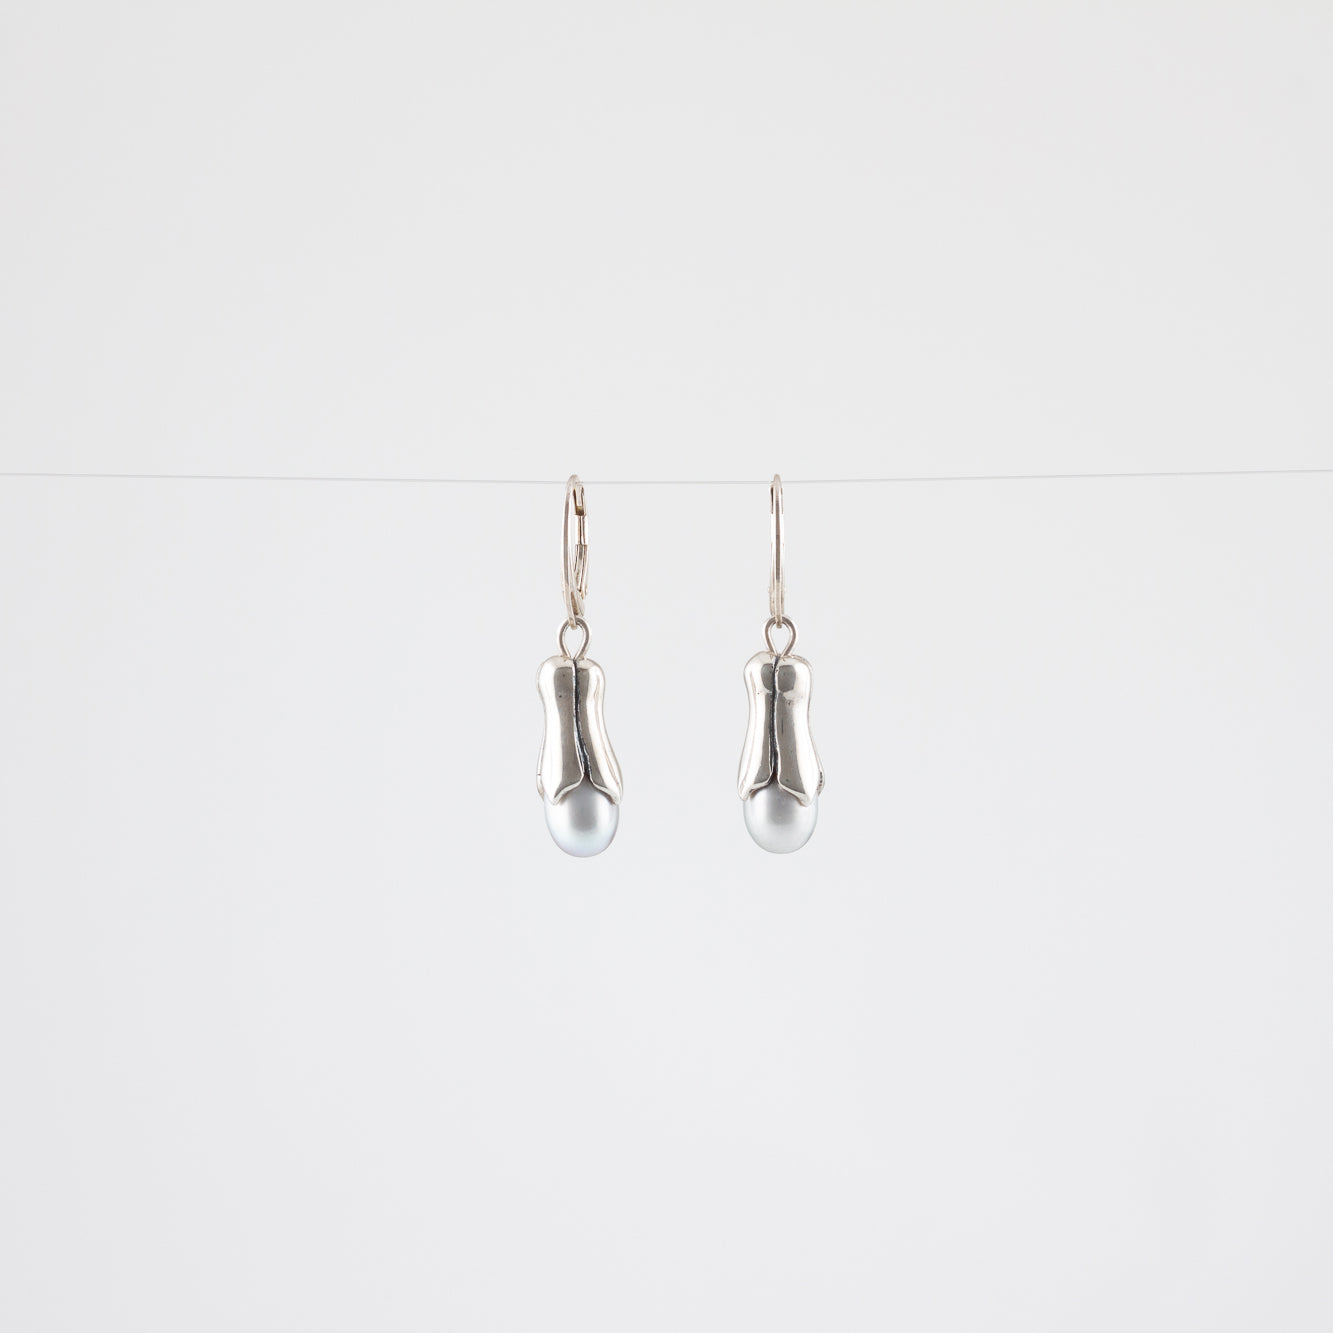 PEARLPOD EARRINGS // SILVER